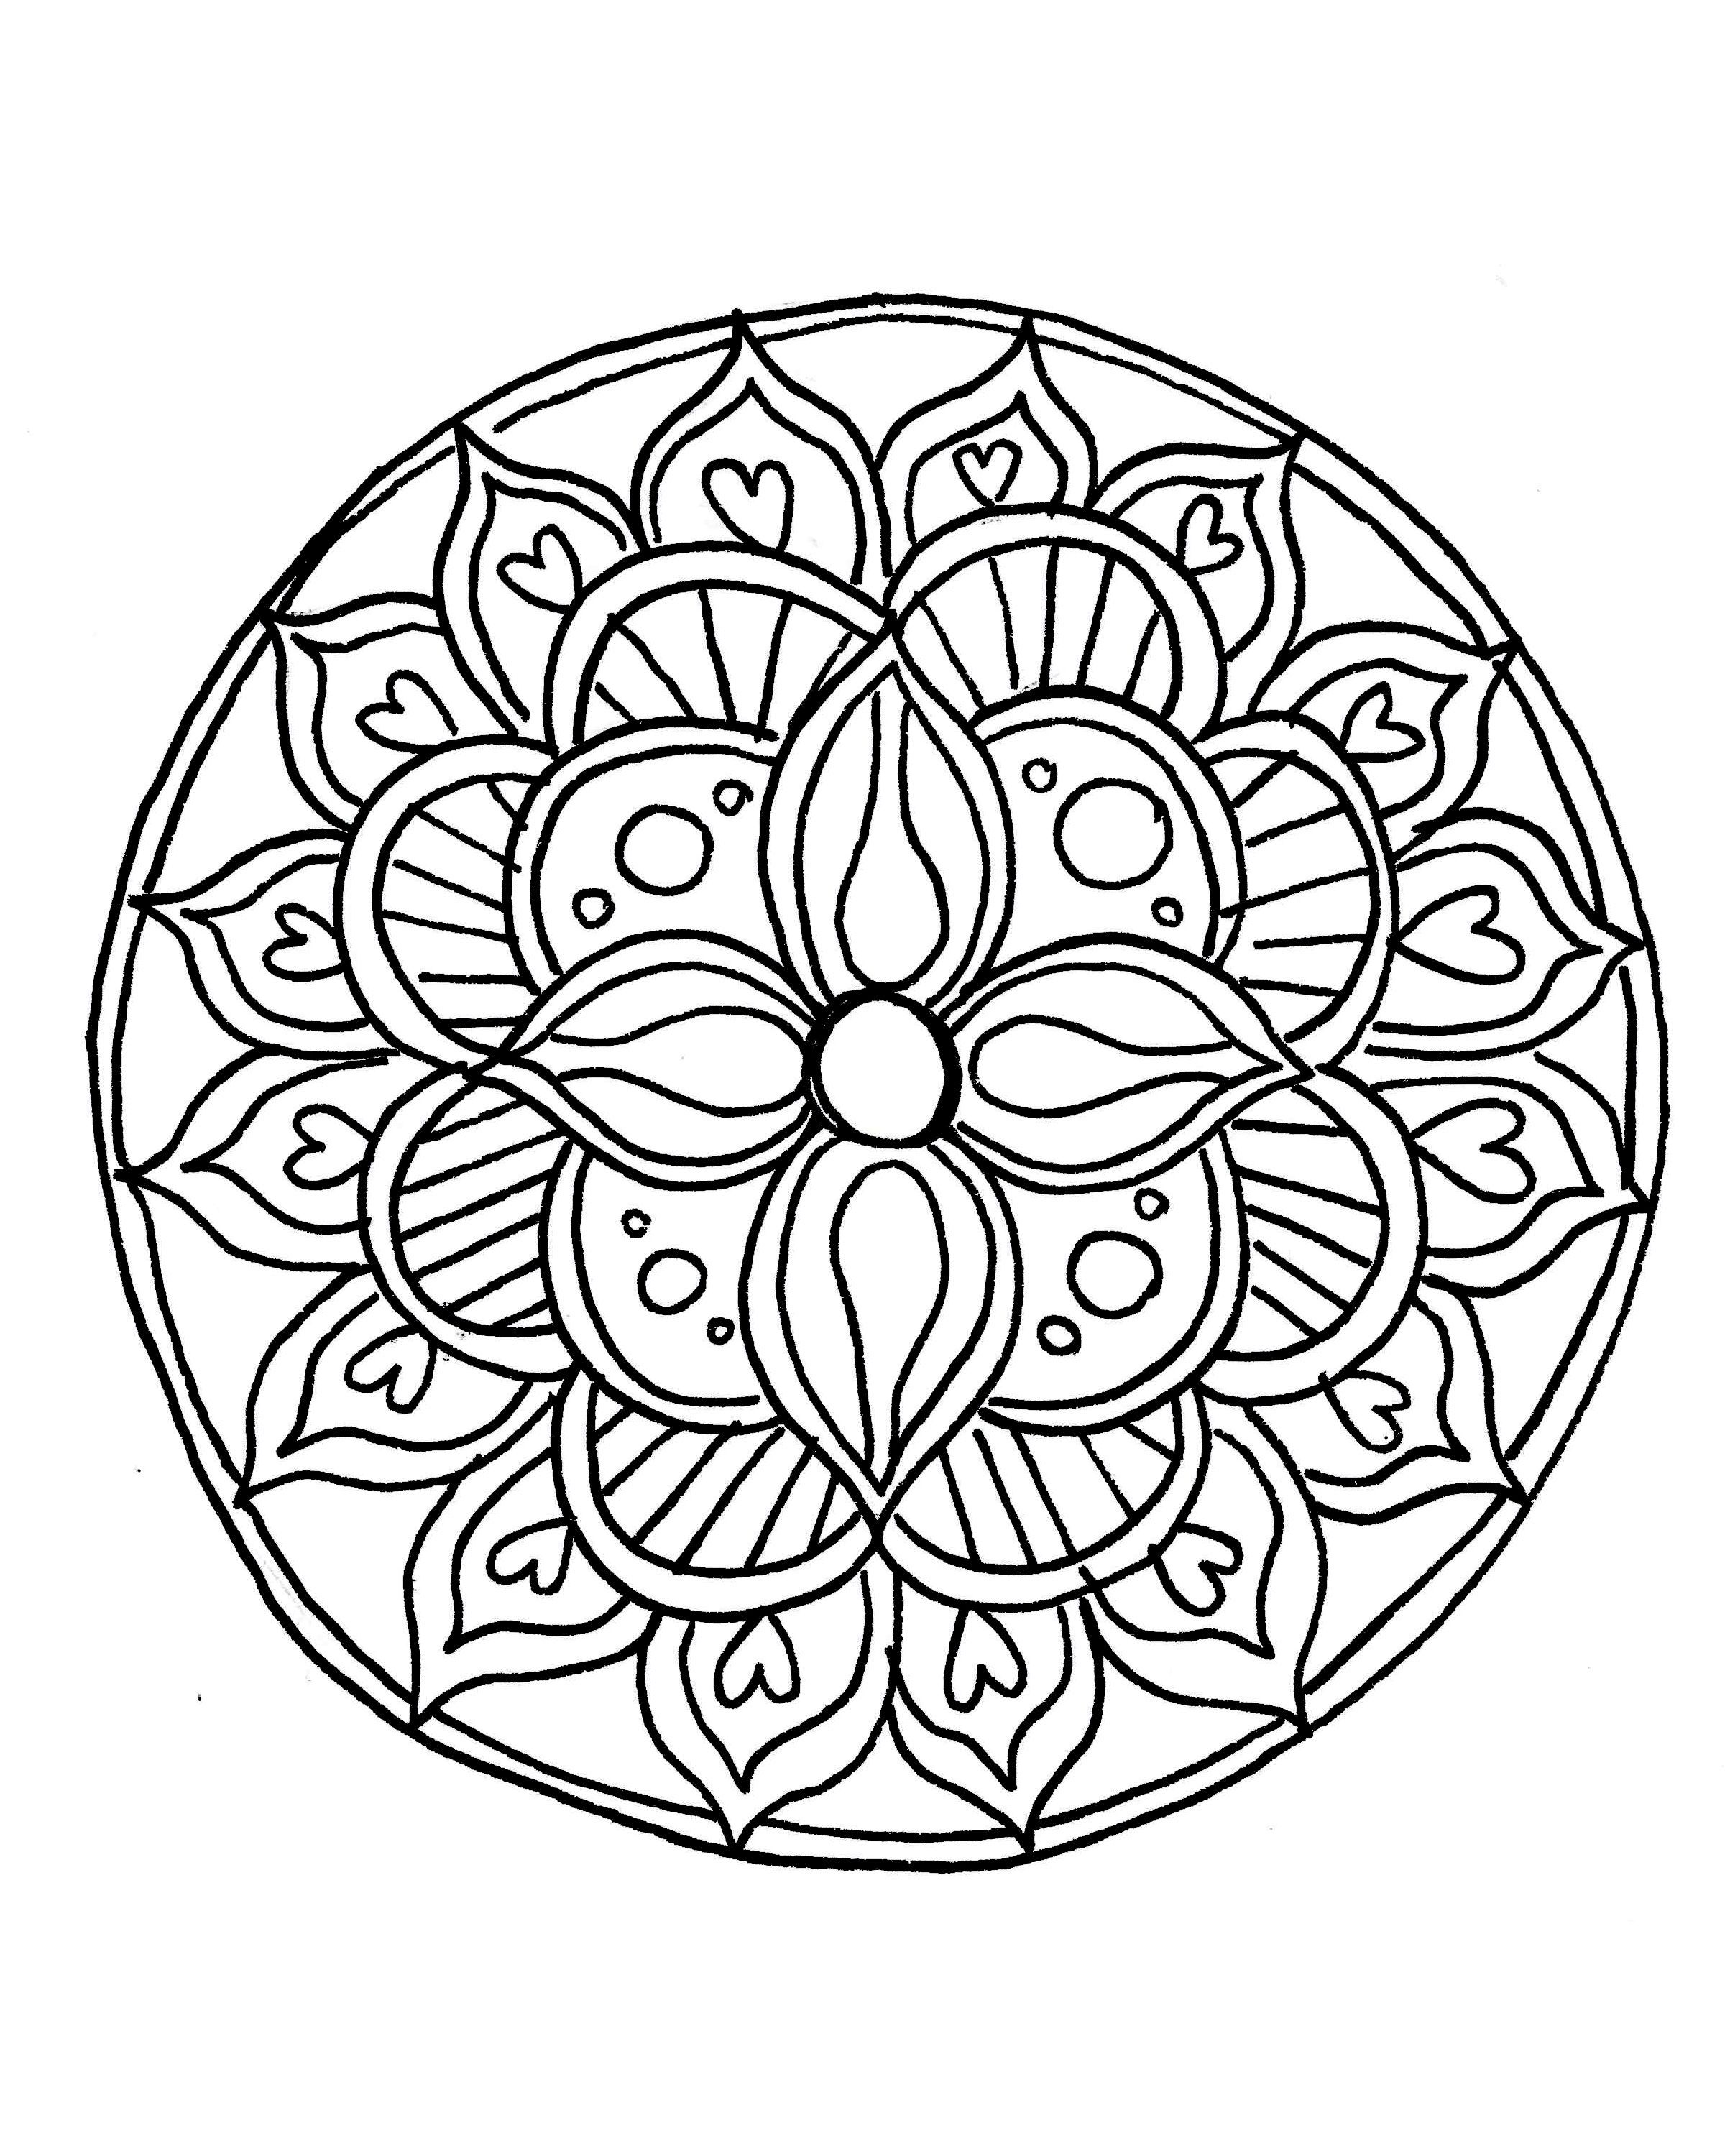 color your own mandala color your own heron mandala coloring poster zazzlecom color your mandala own